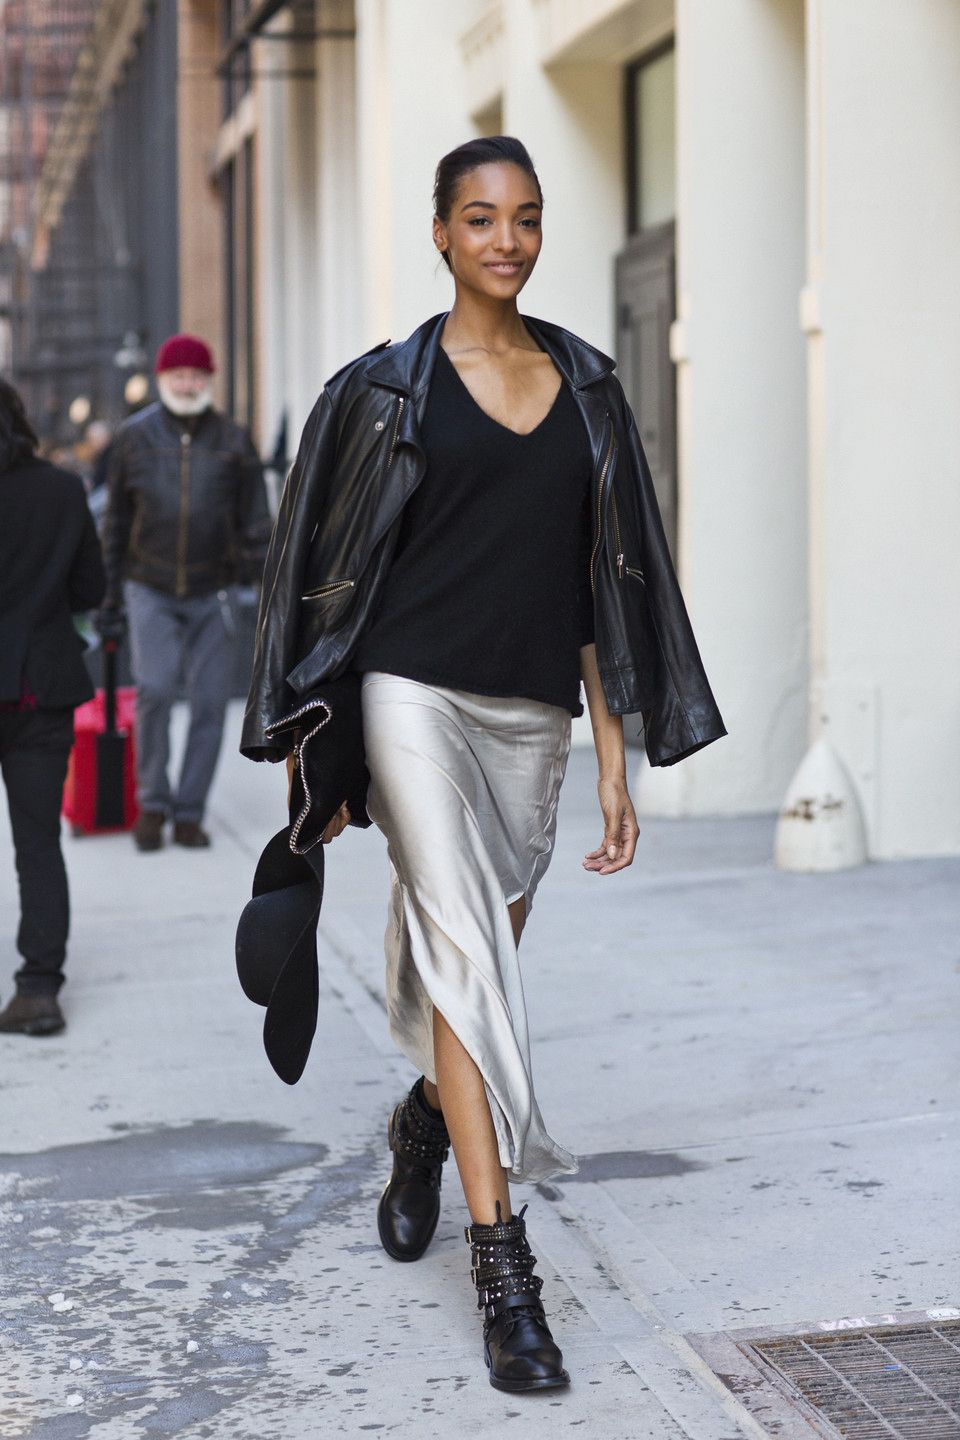 NYFW: Best of Street Style | Fashion, Style, Silver skirt outfits